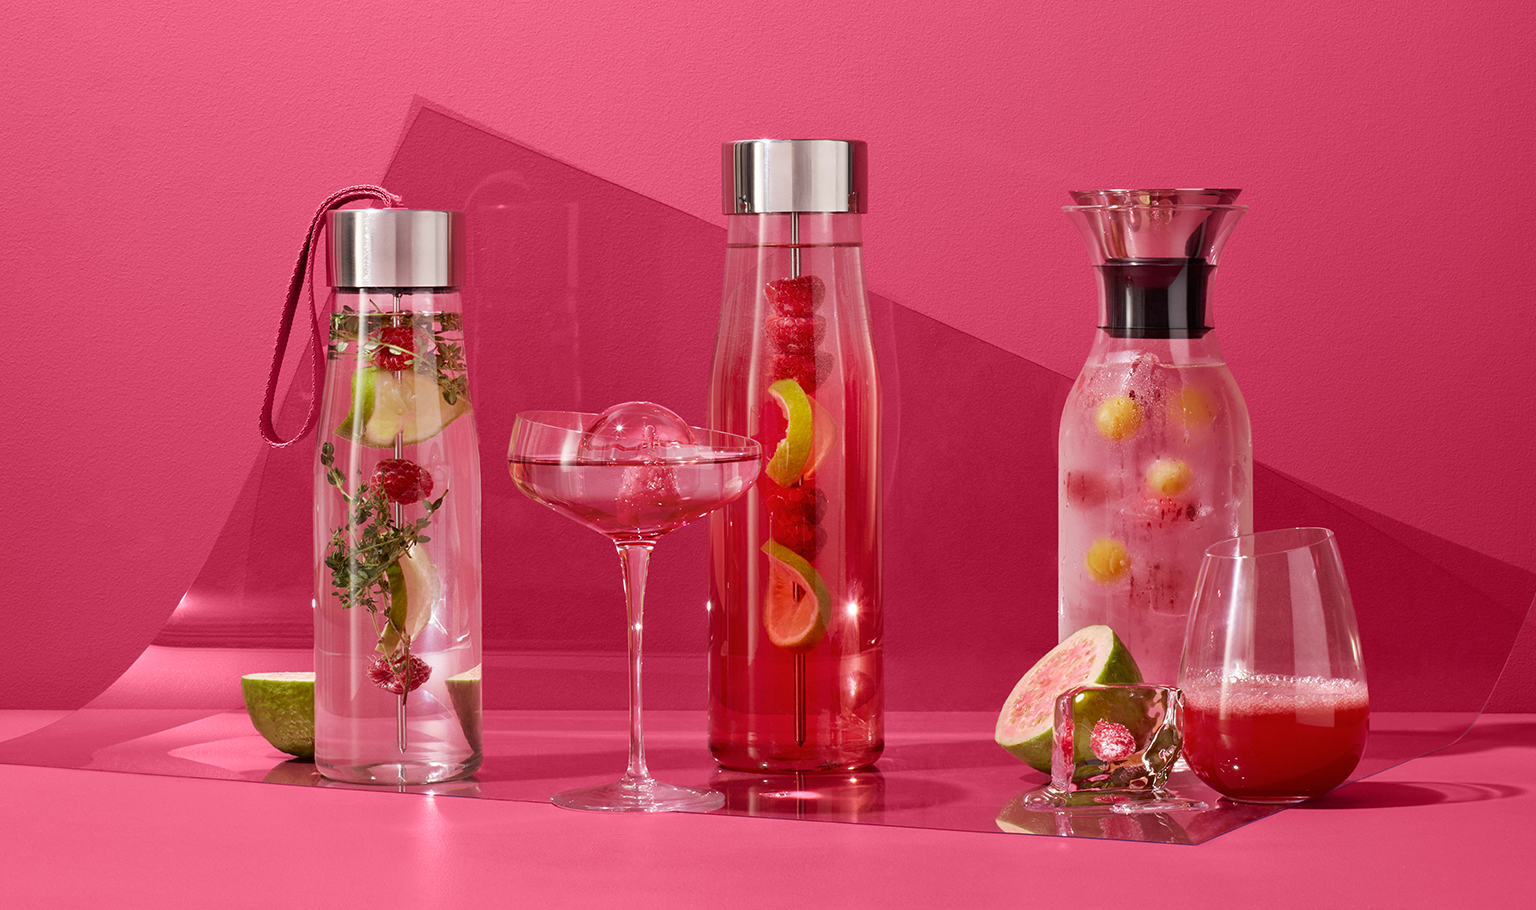 <p>Enjoy fresh, homemade lemonade with raspberries served in elegant glasses.<br />Click here to see our favourite lemonade recipies.</p>